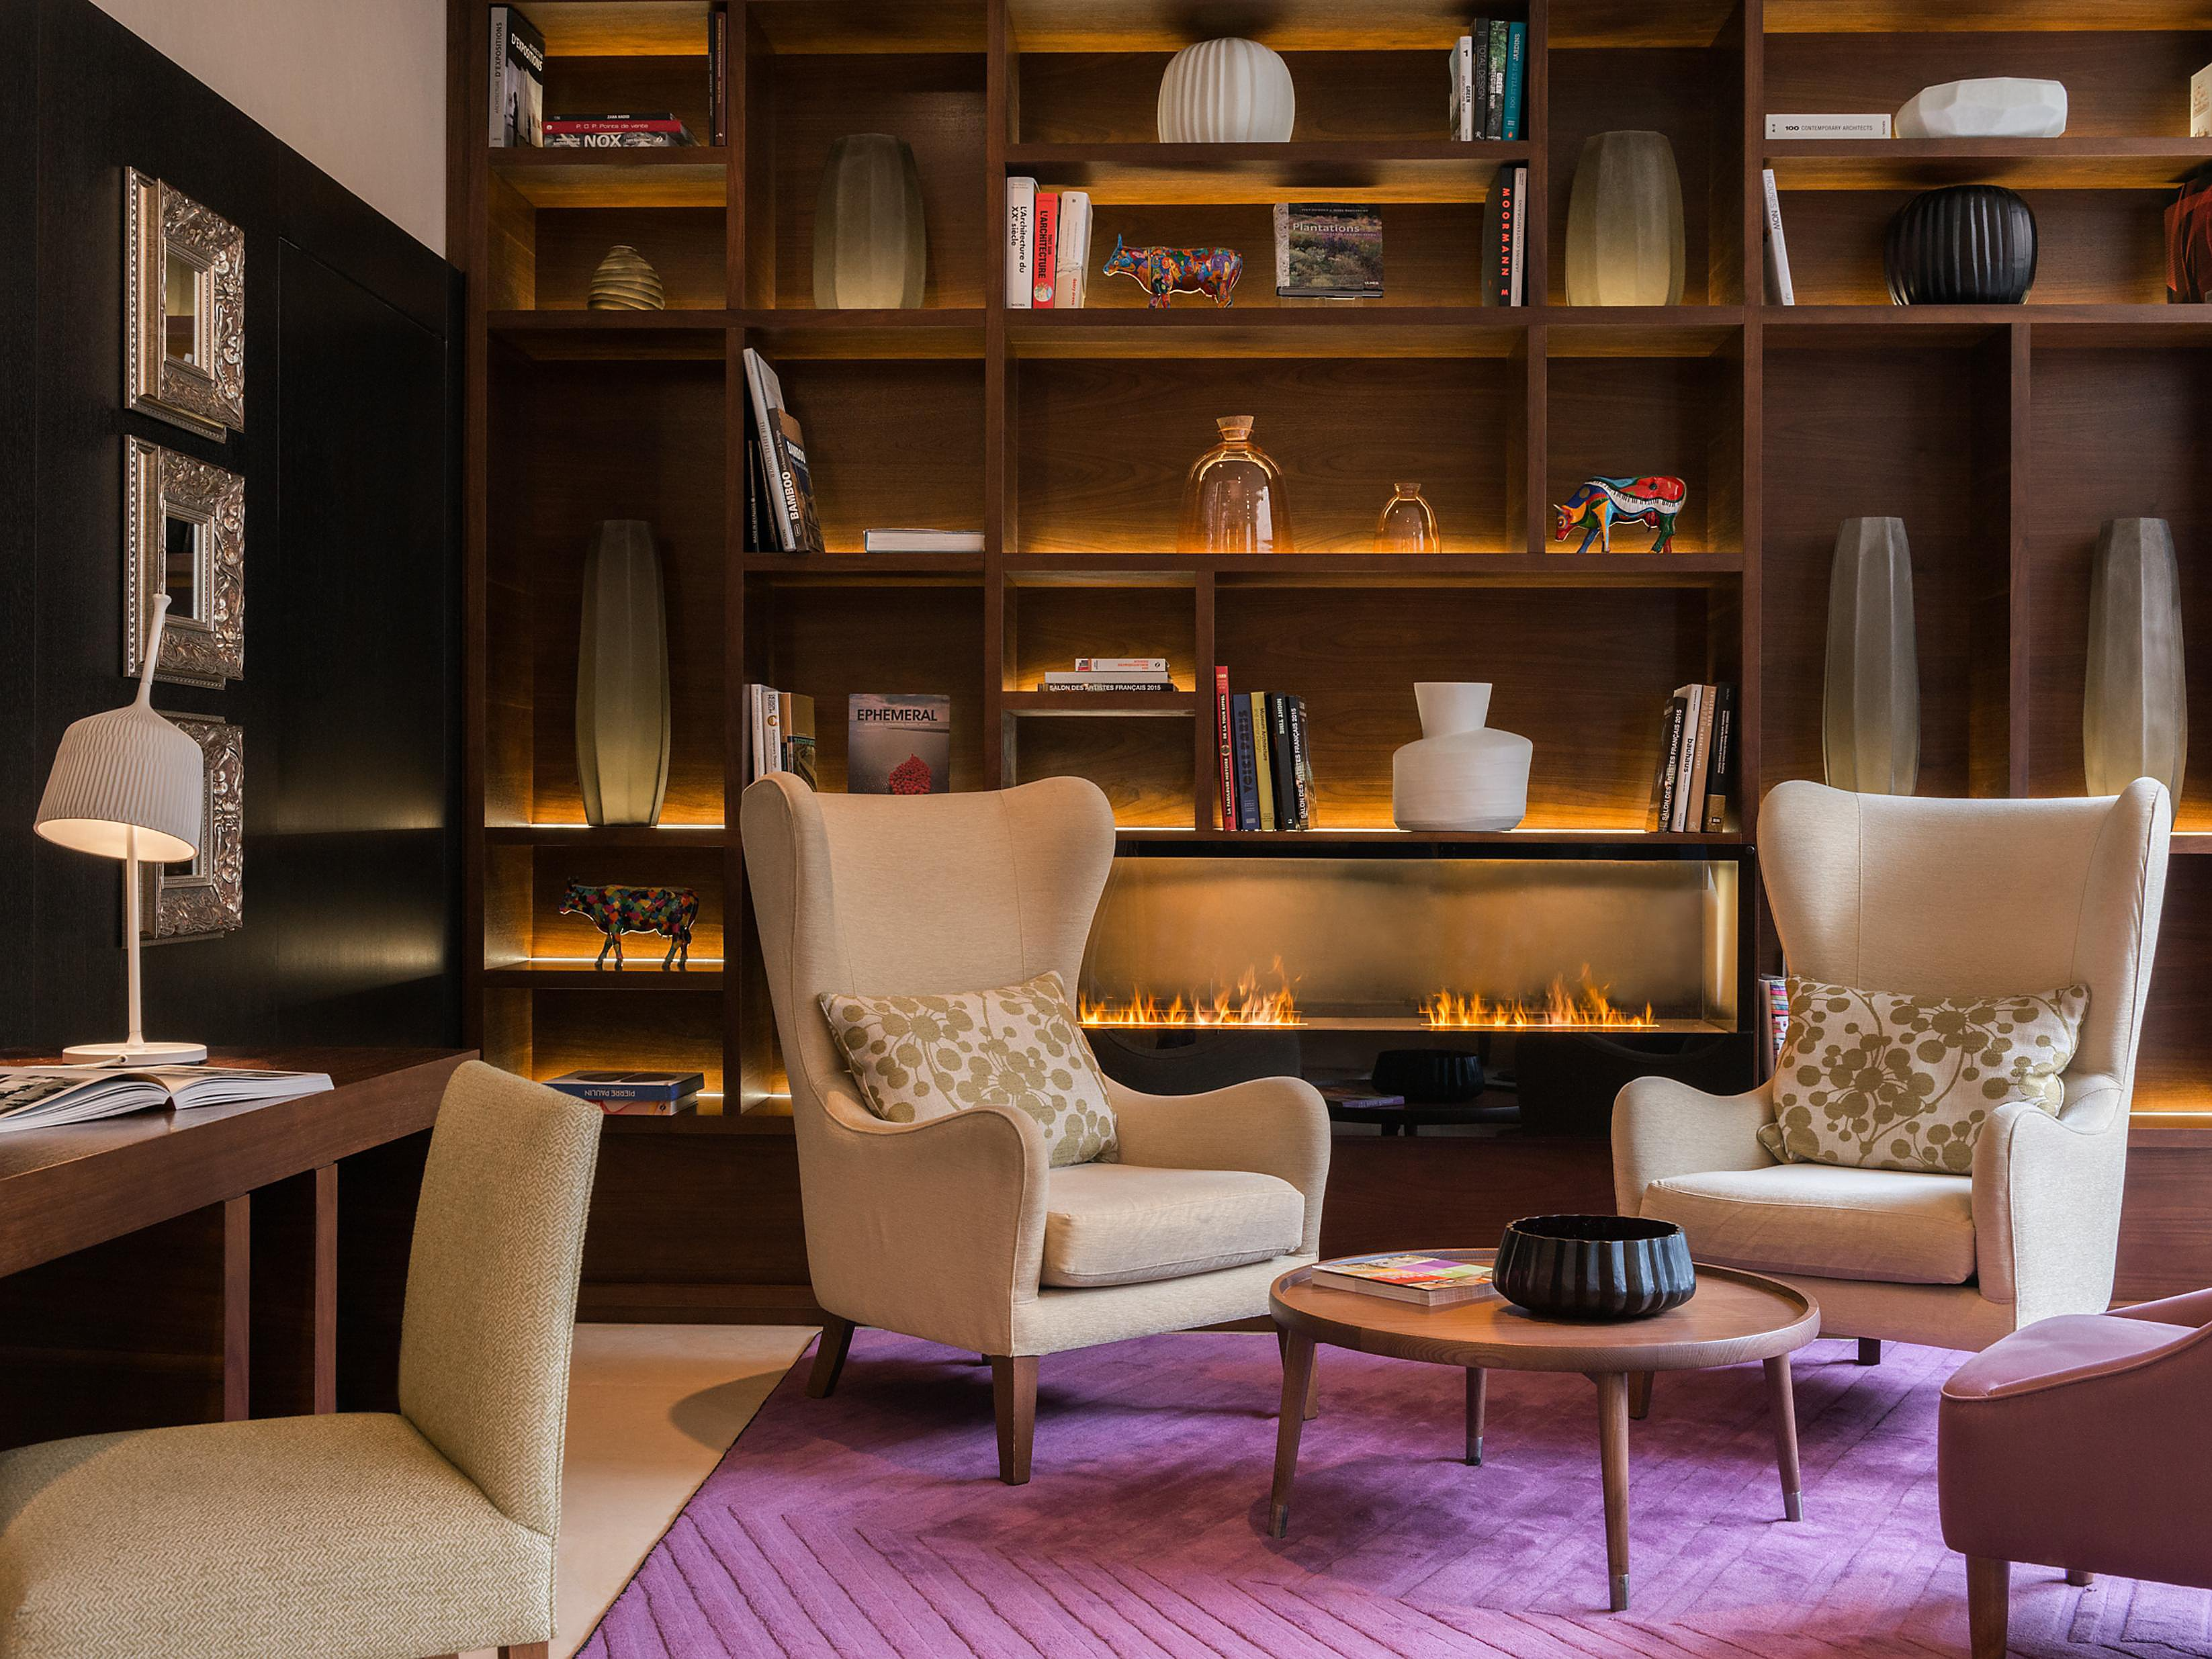 4 Star Business Neuilly Hotel Crowne Plaza Paris Neuilly